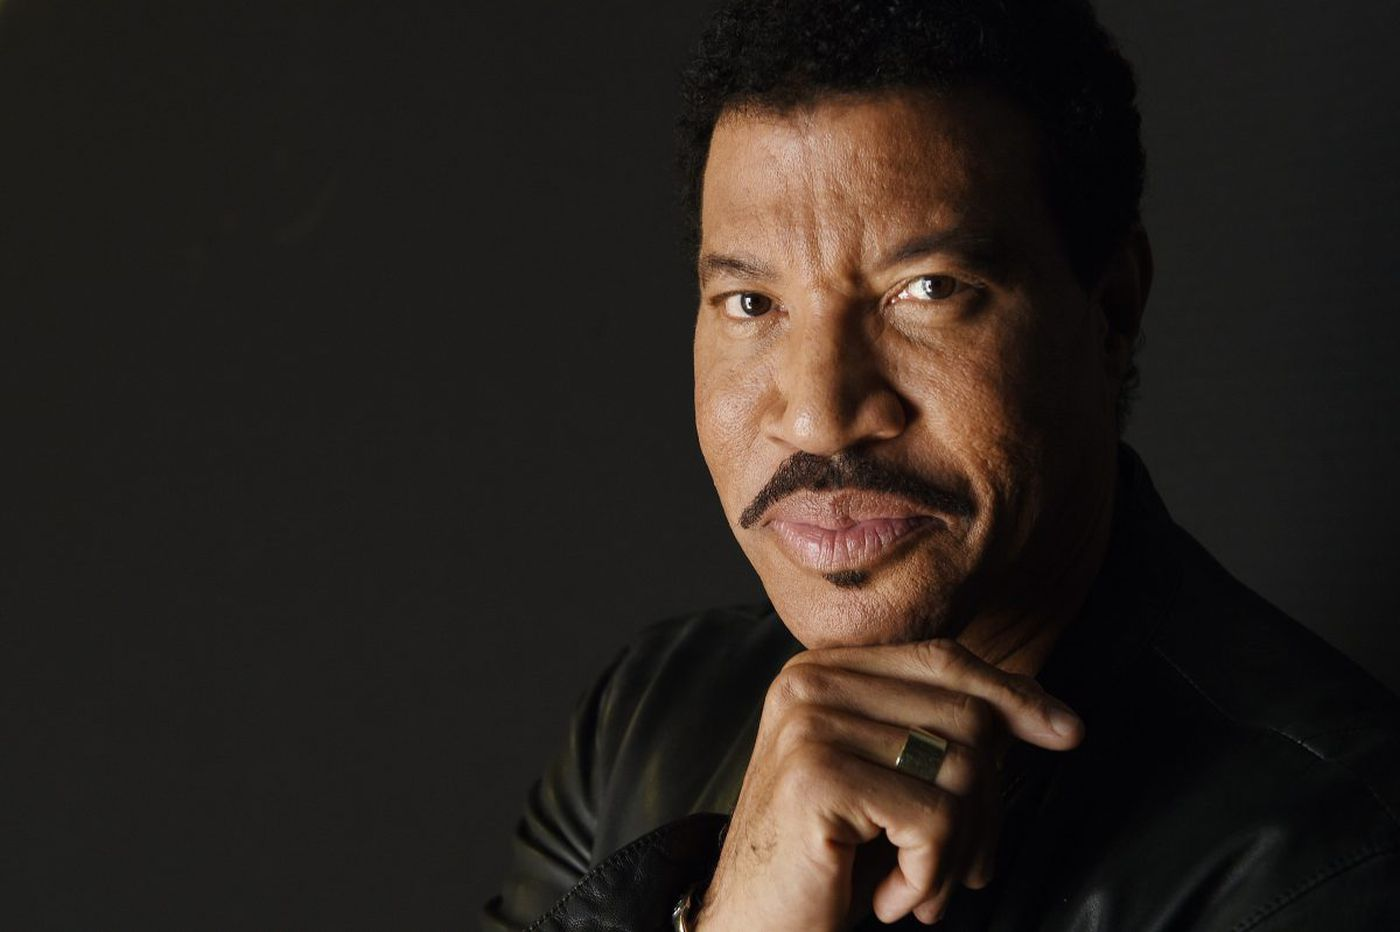 Lionel Richie: Why band reunions are like seeing your grandfather in a Speedo